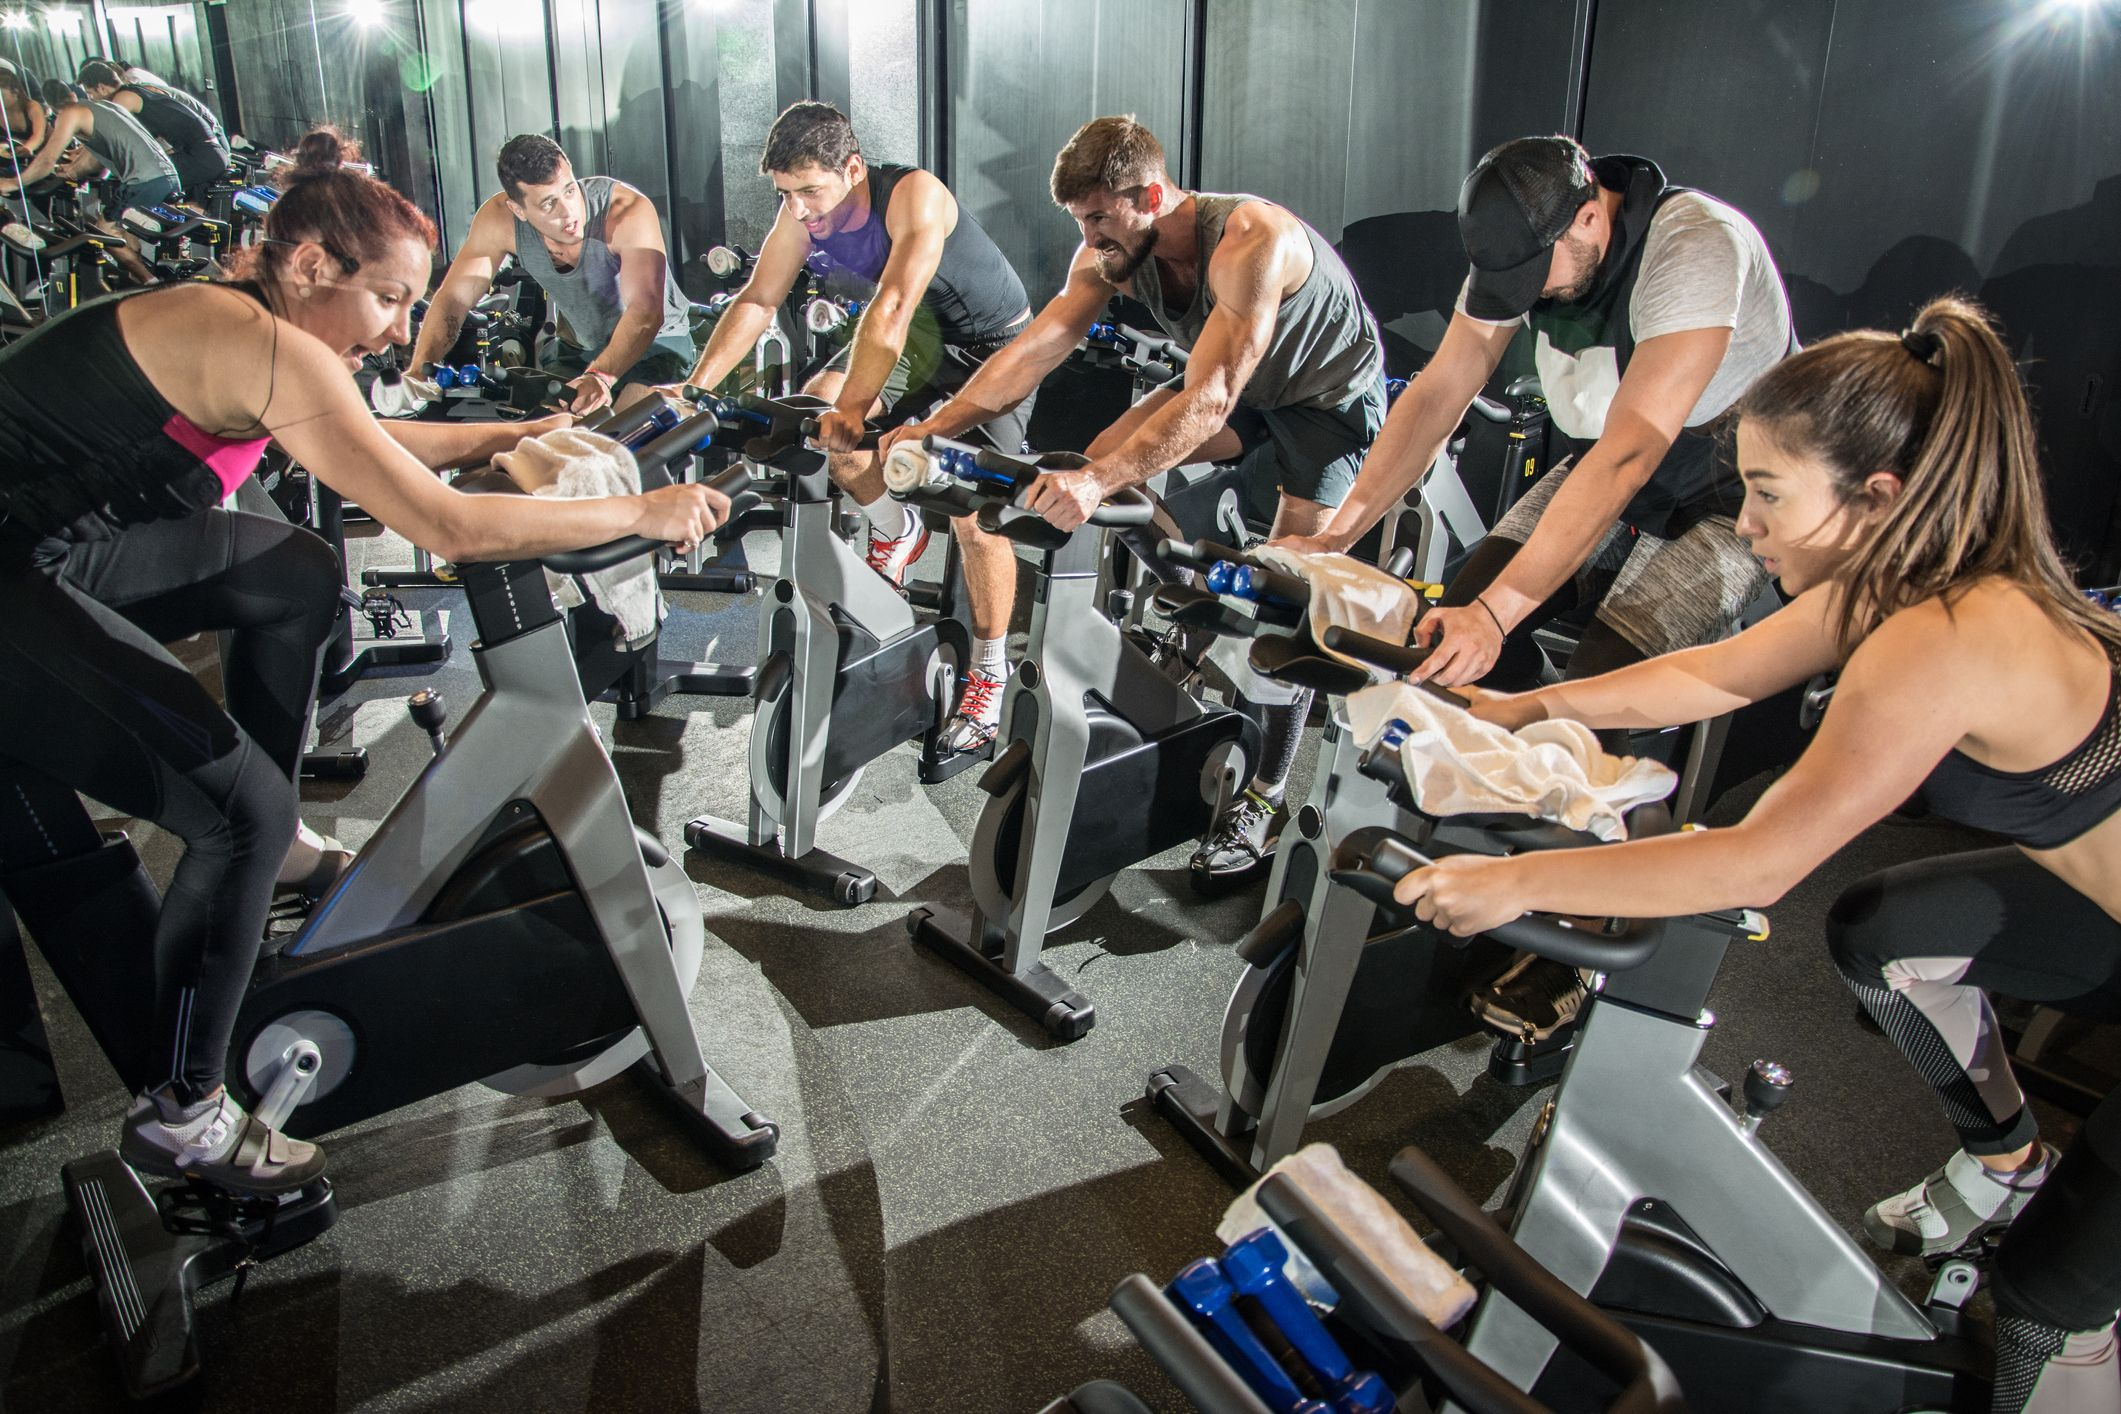 Spin Class Workout - 3 Tips to Help You Get the Most Out of